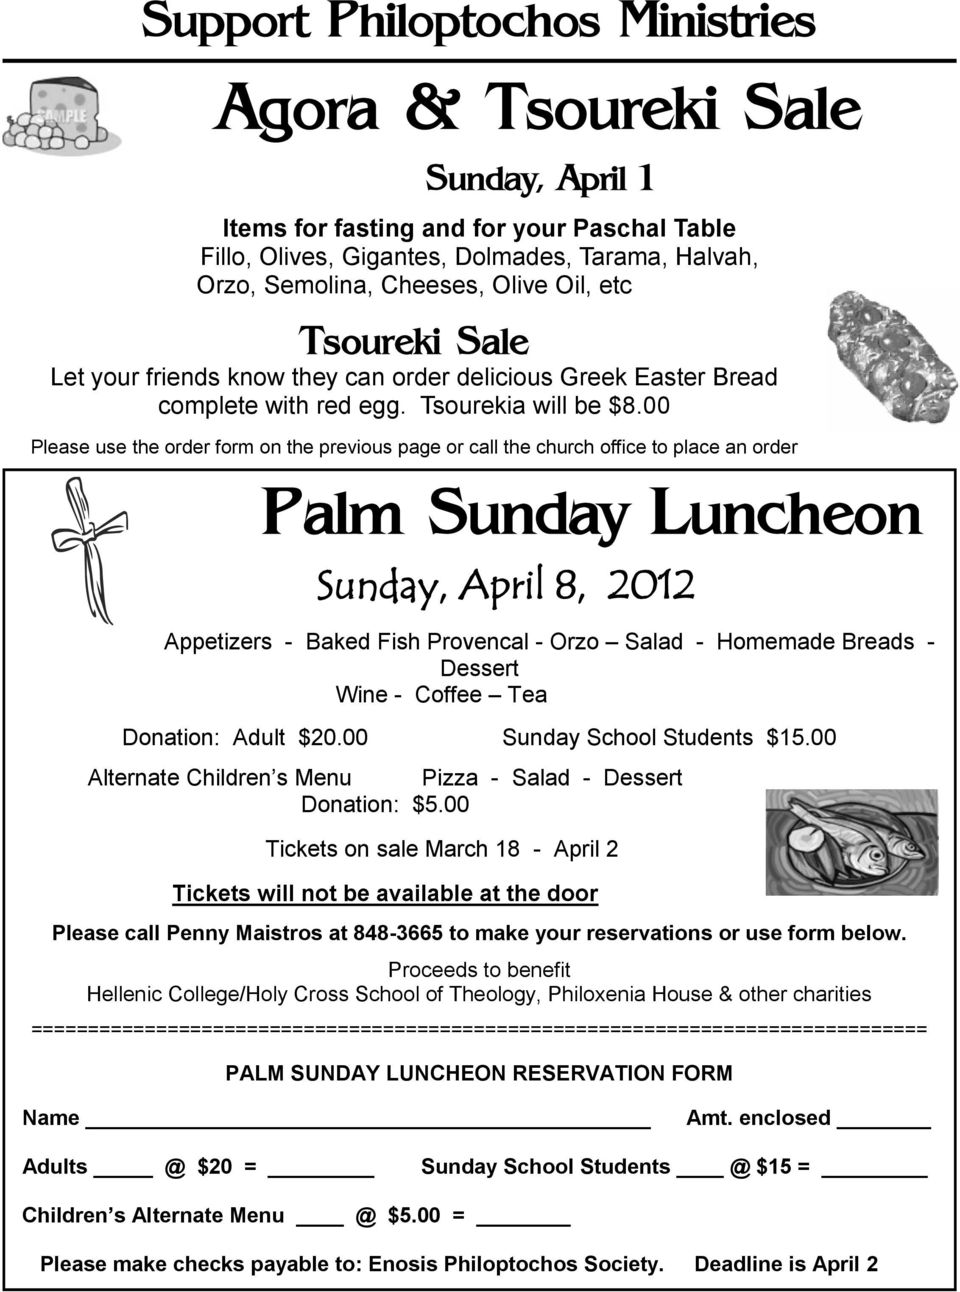 00 Please use the order form on the previous page or call the church office to place an order Palm Sunday Luncheon Sunday, April 8, 2012 Appetizers - Baked Fish Provencal - Orzo Salad - Homemade